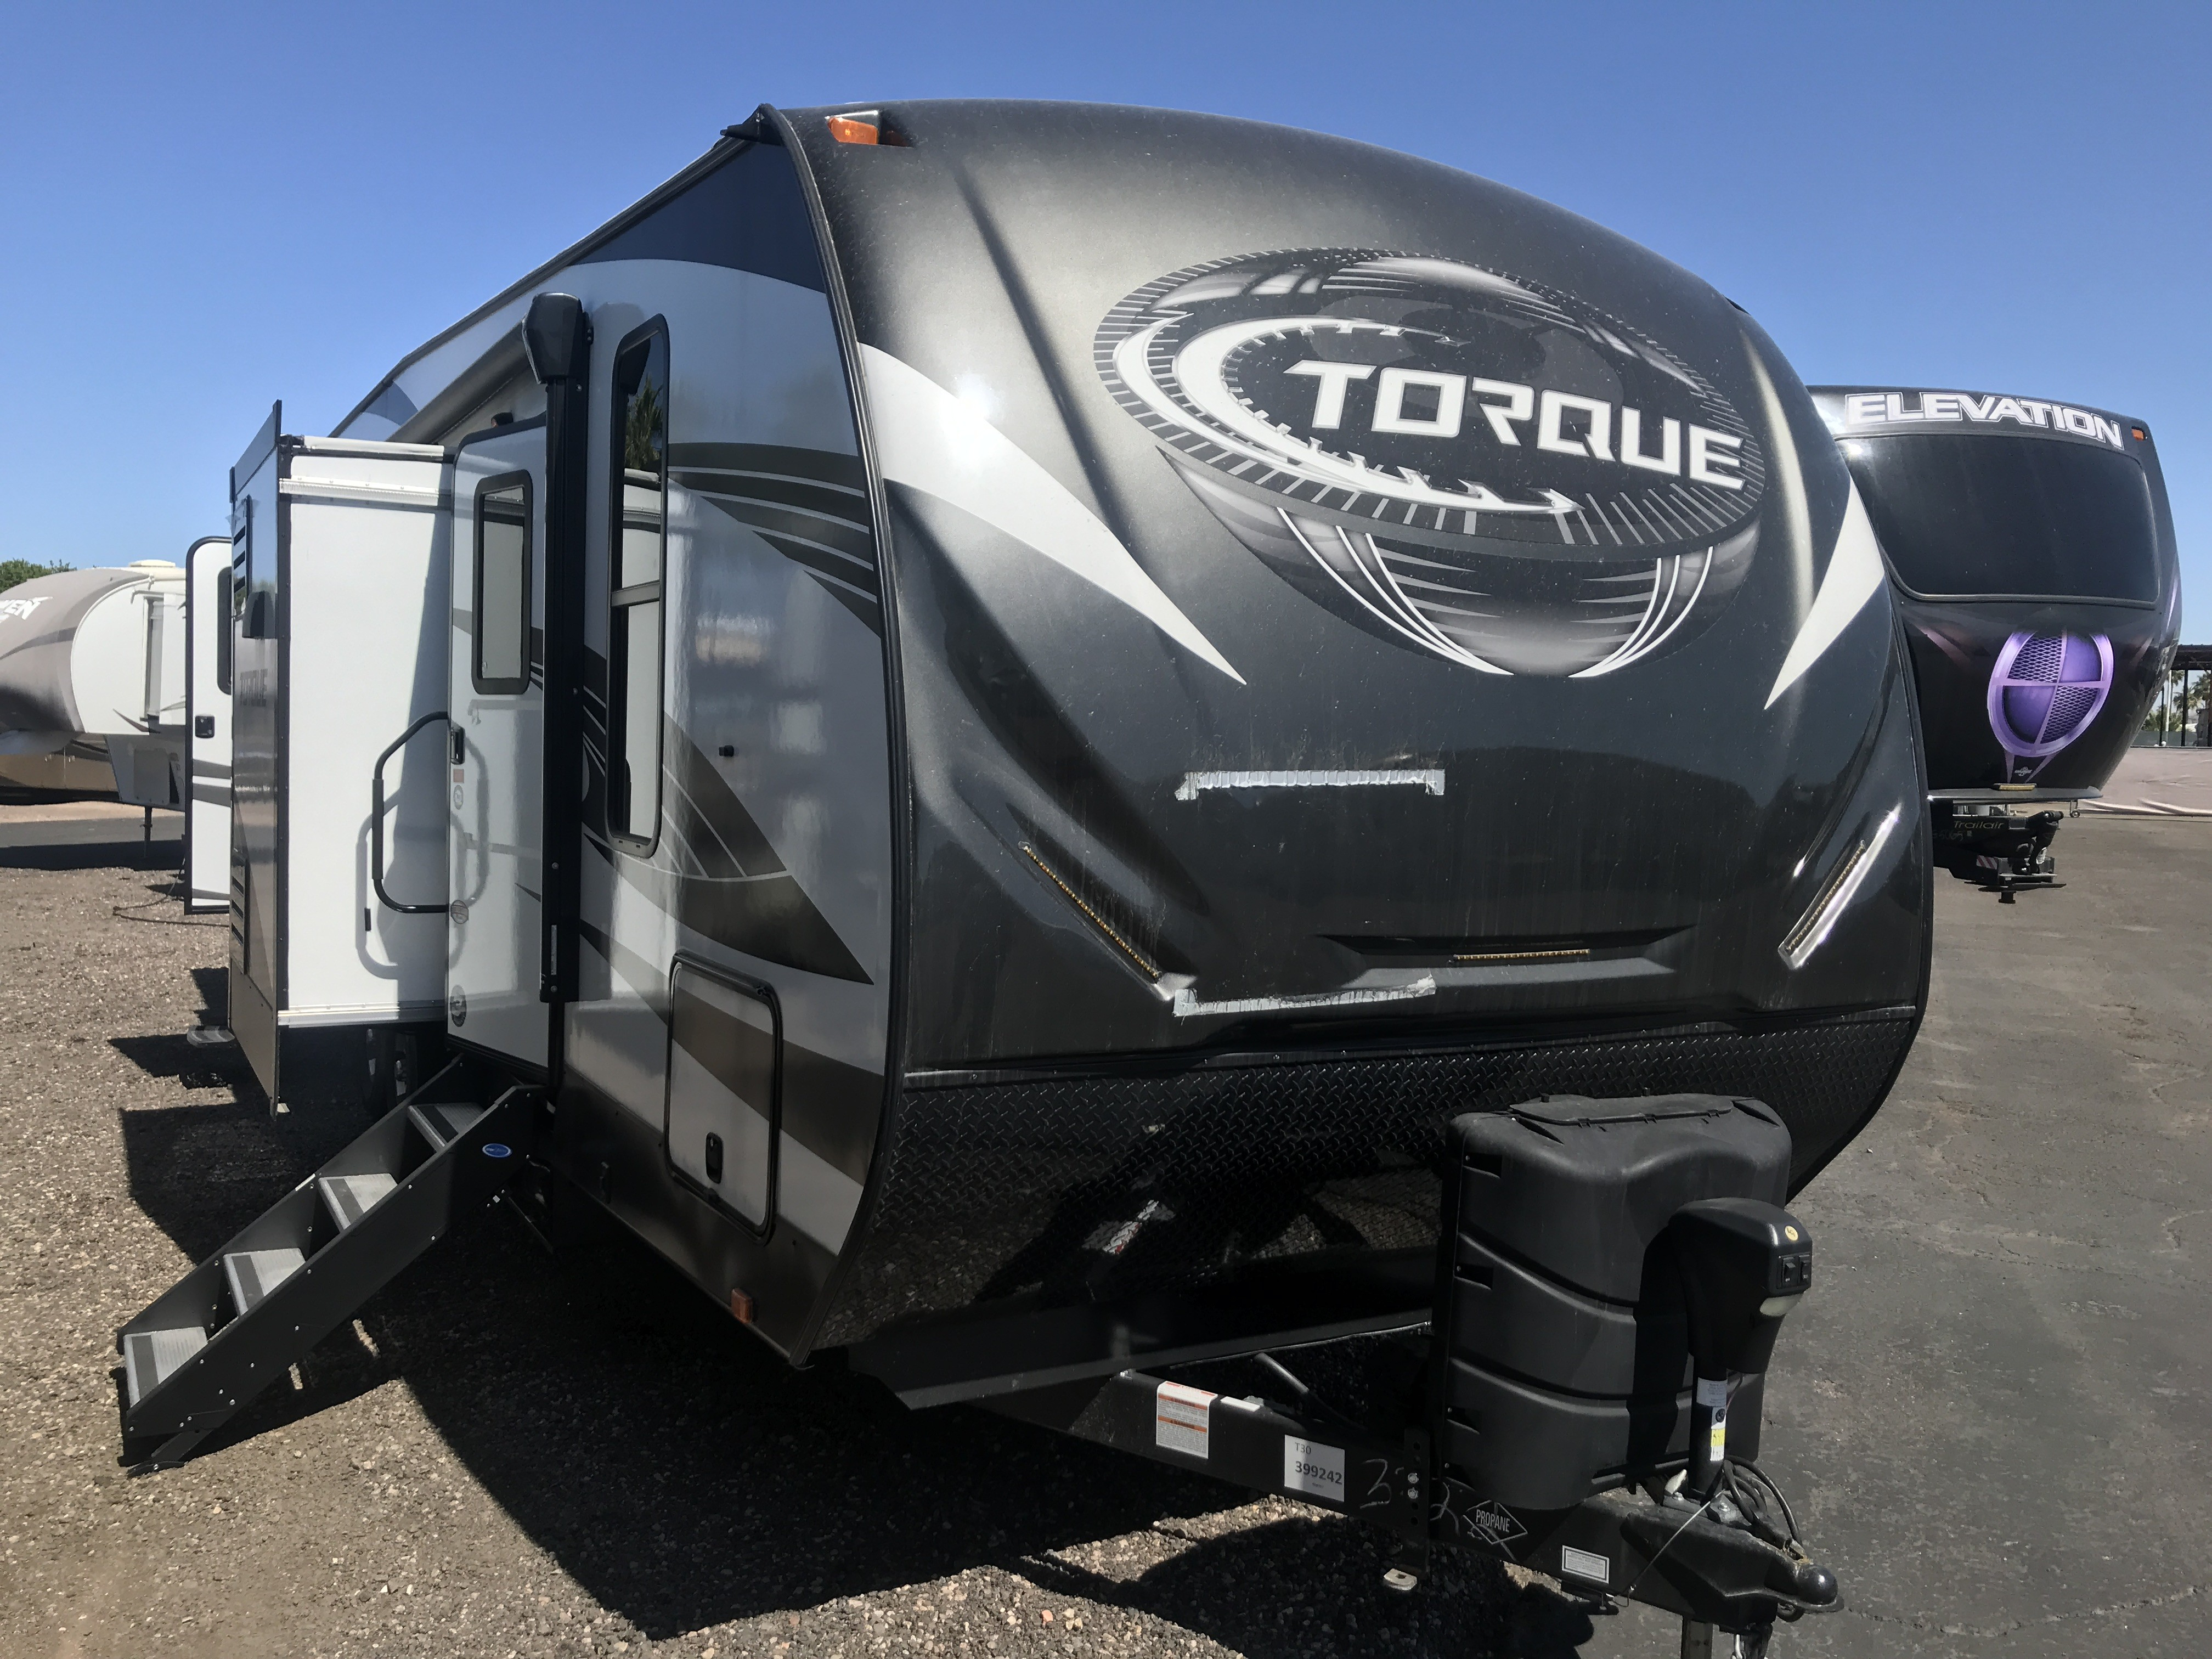 Used, 2019, Heartland, Torque TQ T30, Toy Haulers